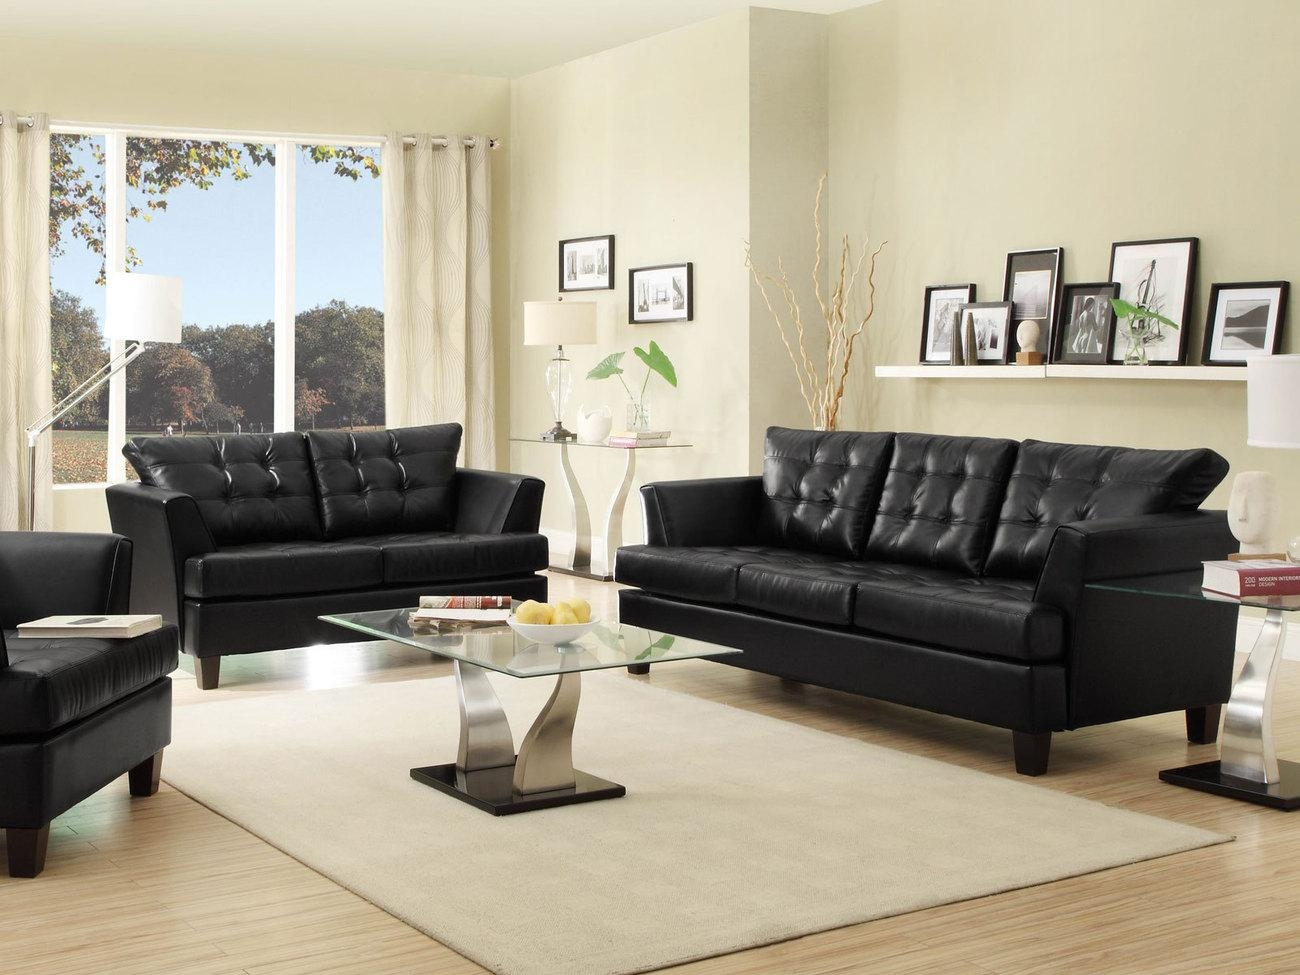 Furniture: Contemporary Couches And Contemporary Sectional Sleeper Intended For West Elm Sectional Sofa (Image 6 of 20)